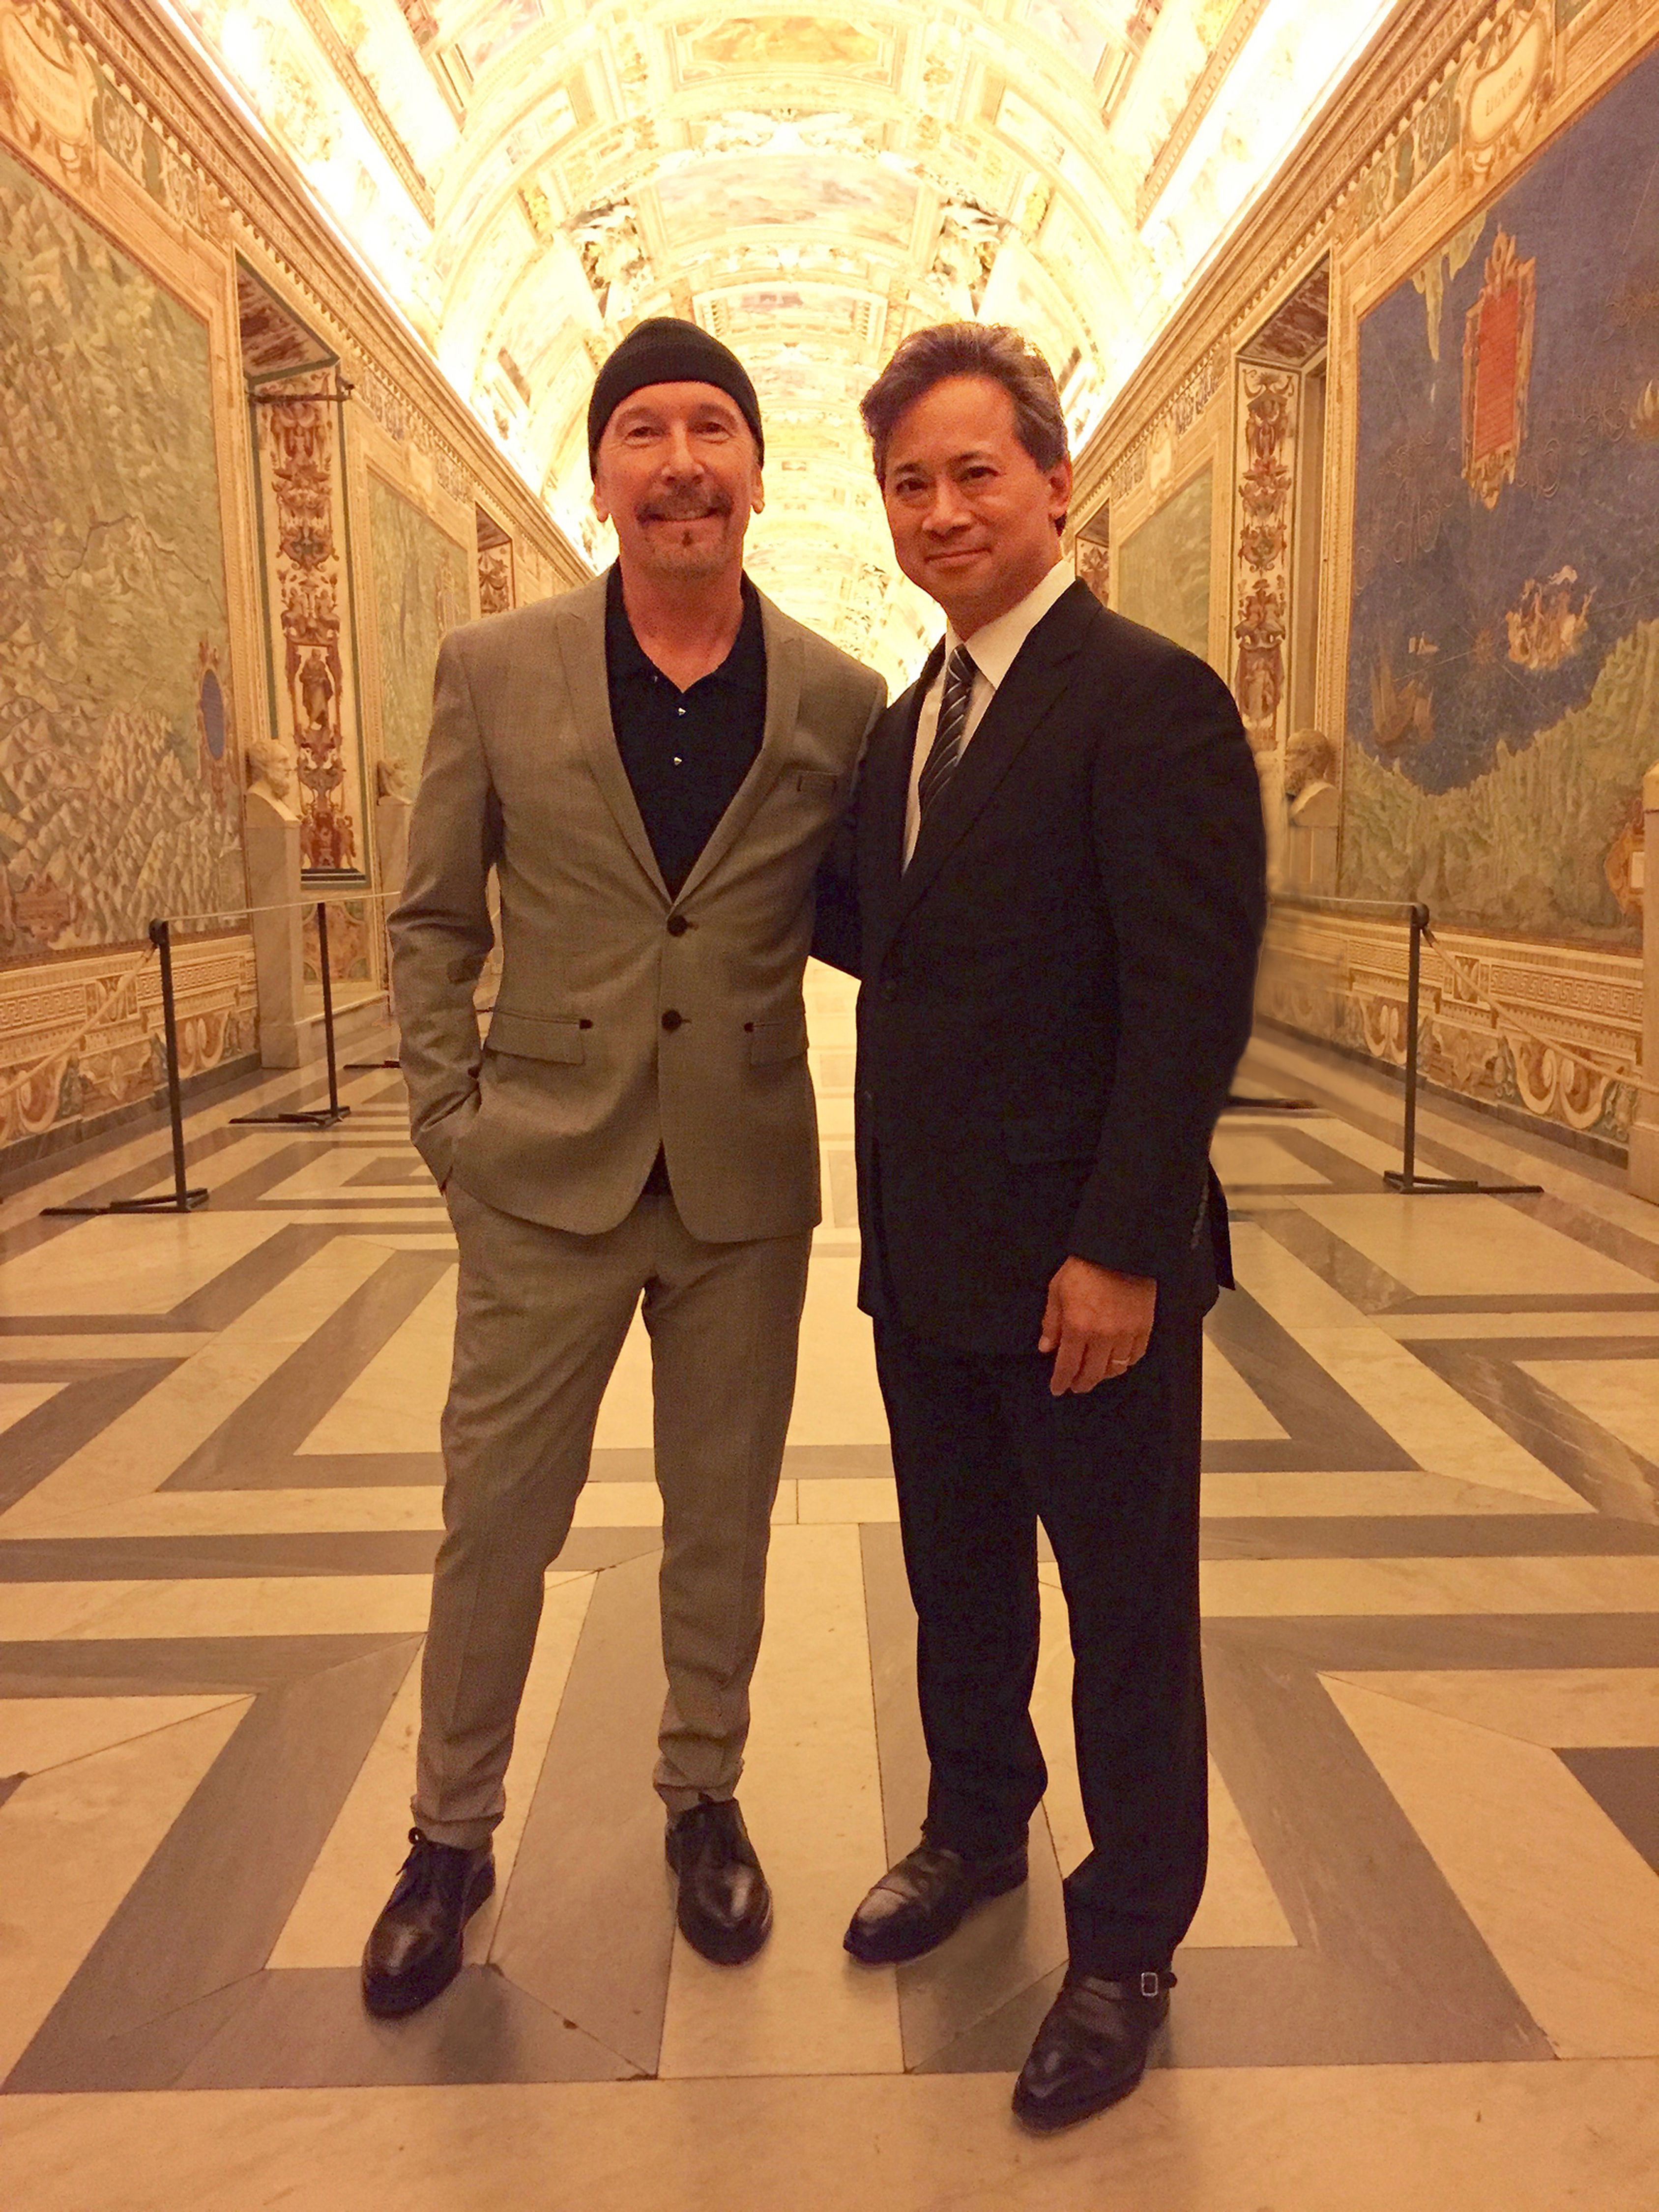 Doctor and Rock Star Bring Mission of Health Equity to Vatican Via Foods that Fight Disease